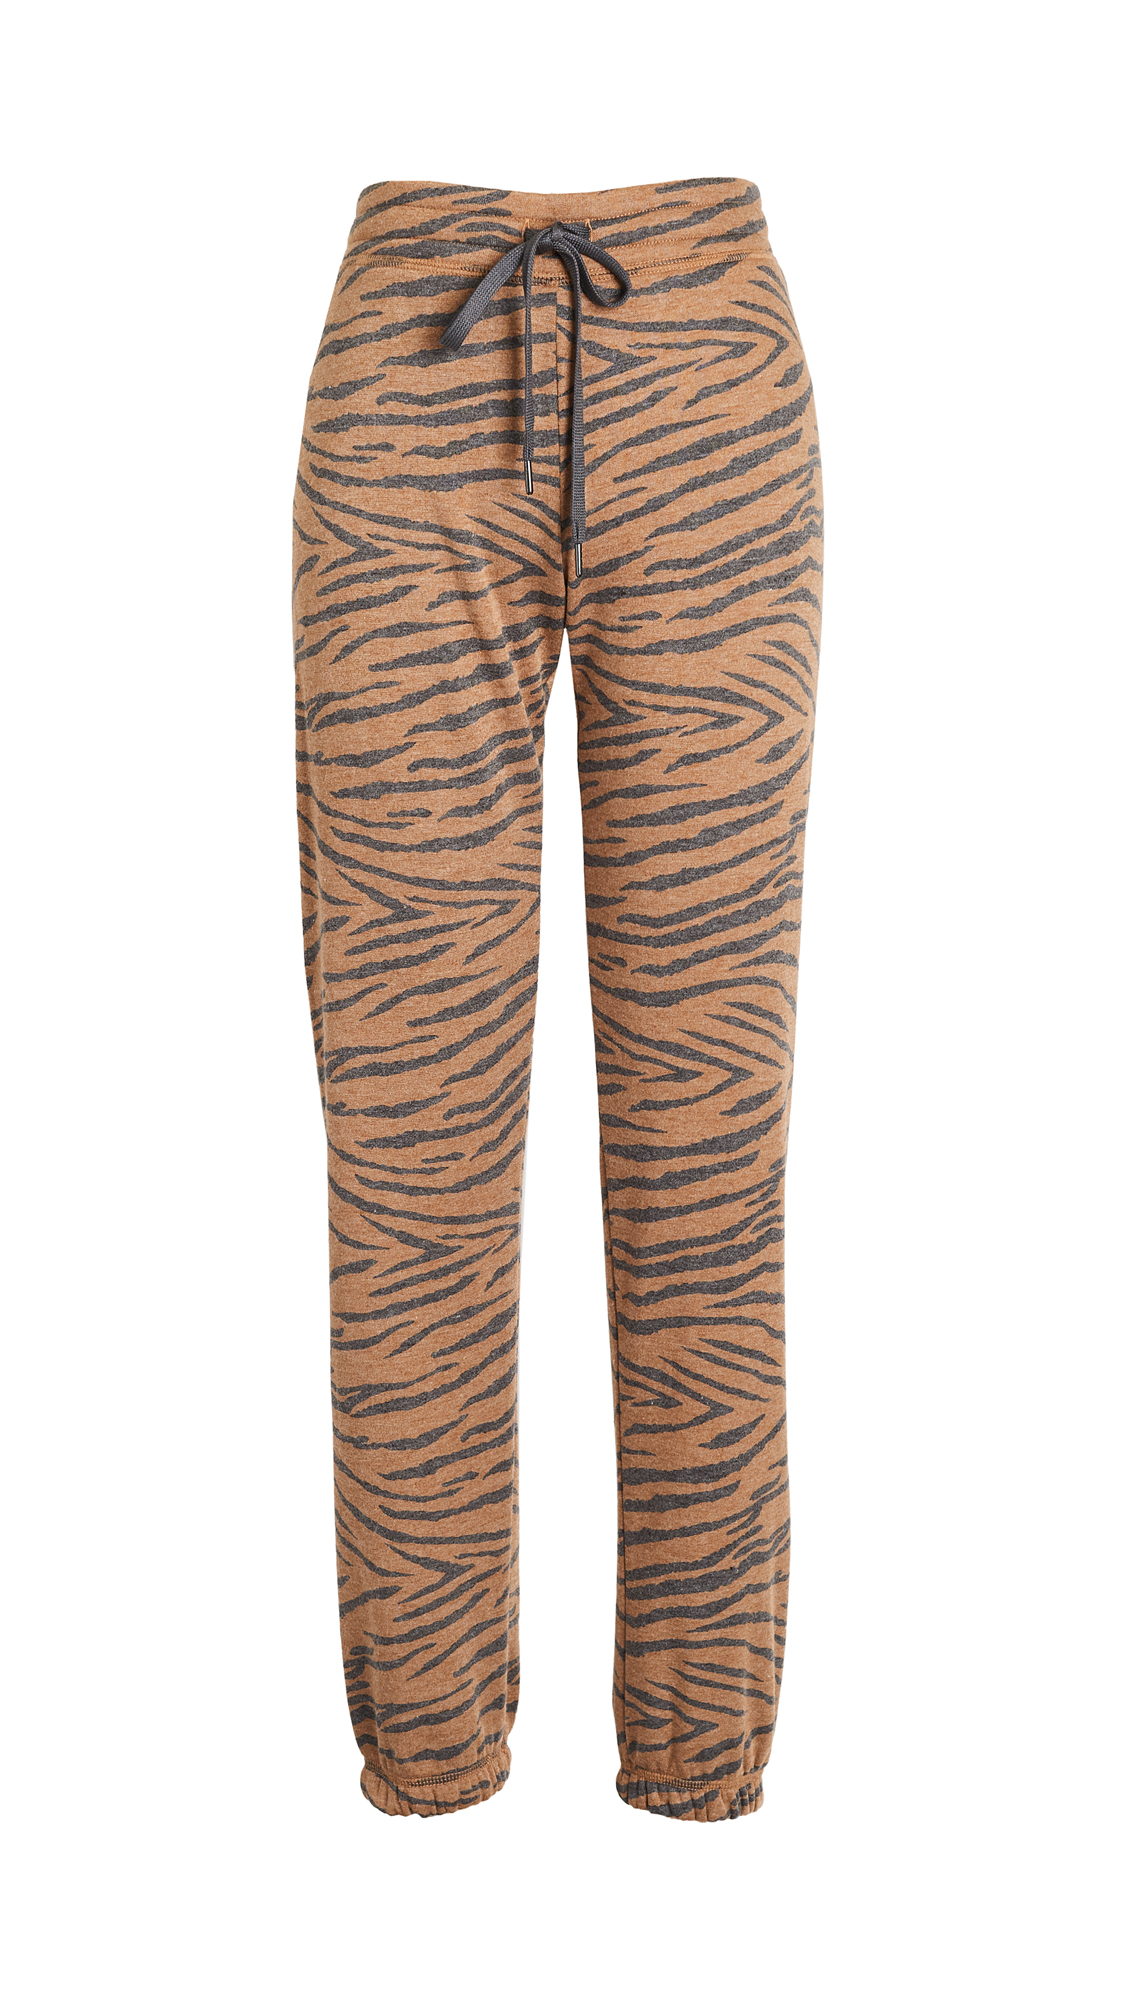 PJ Salvage Wild One Pants